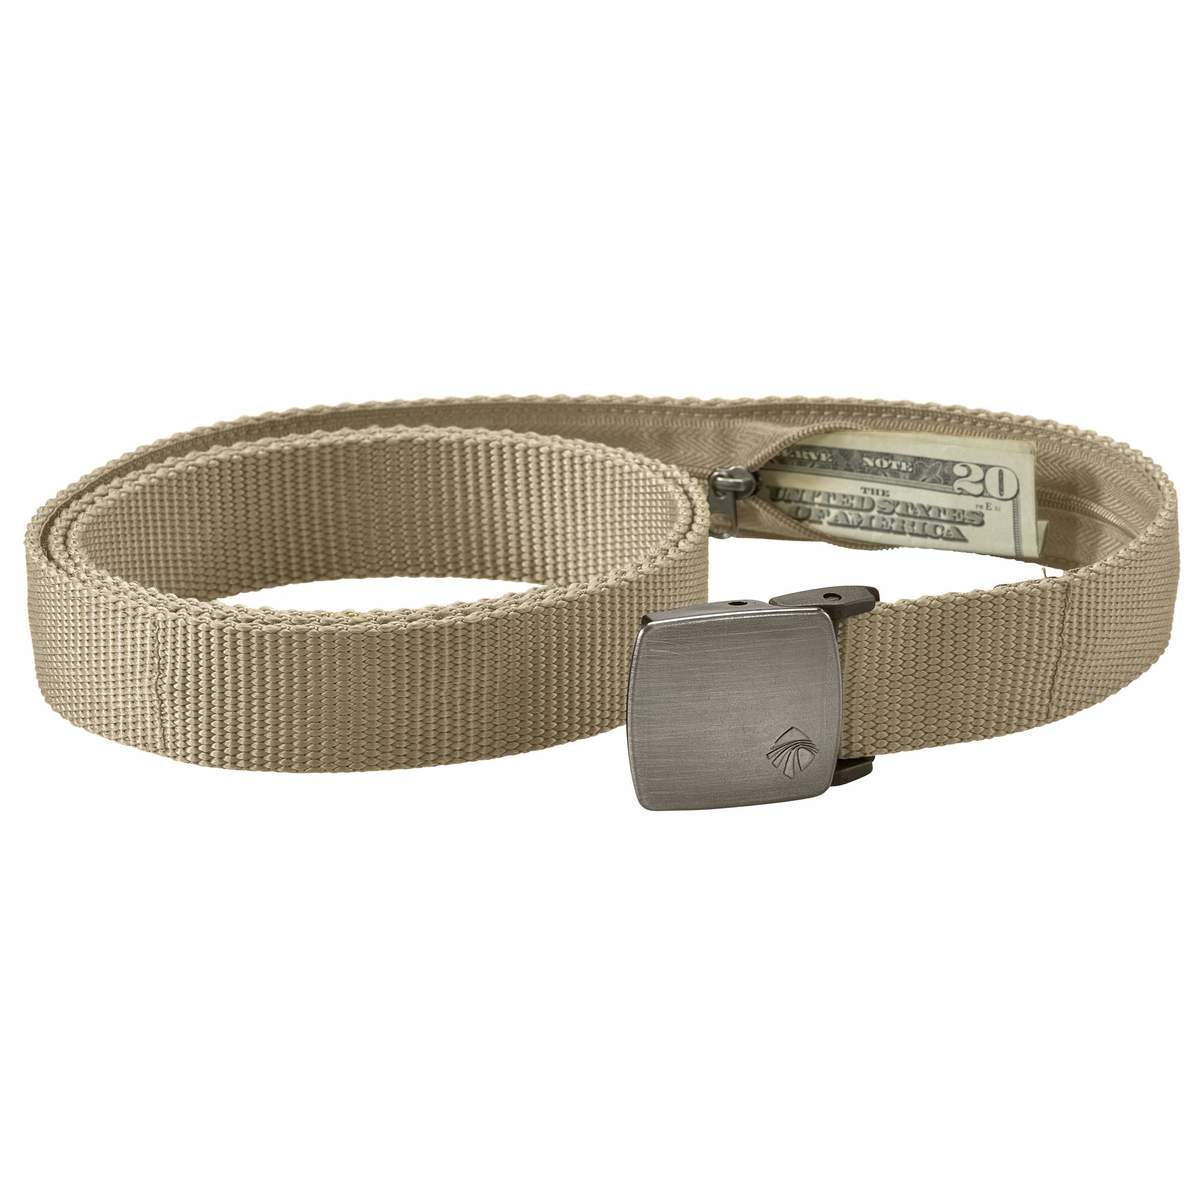 Bild 2 von Eagle Creek ALL TERRAIN MONEY BELT - Gürtel